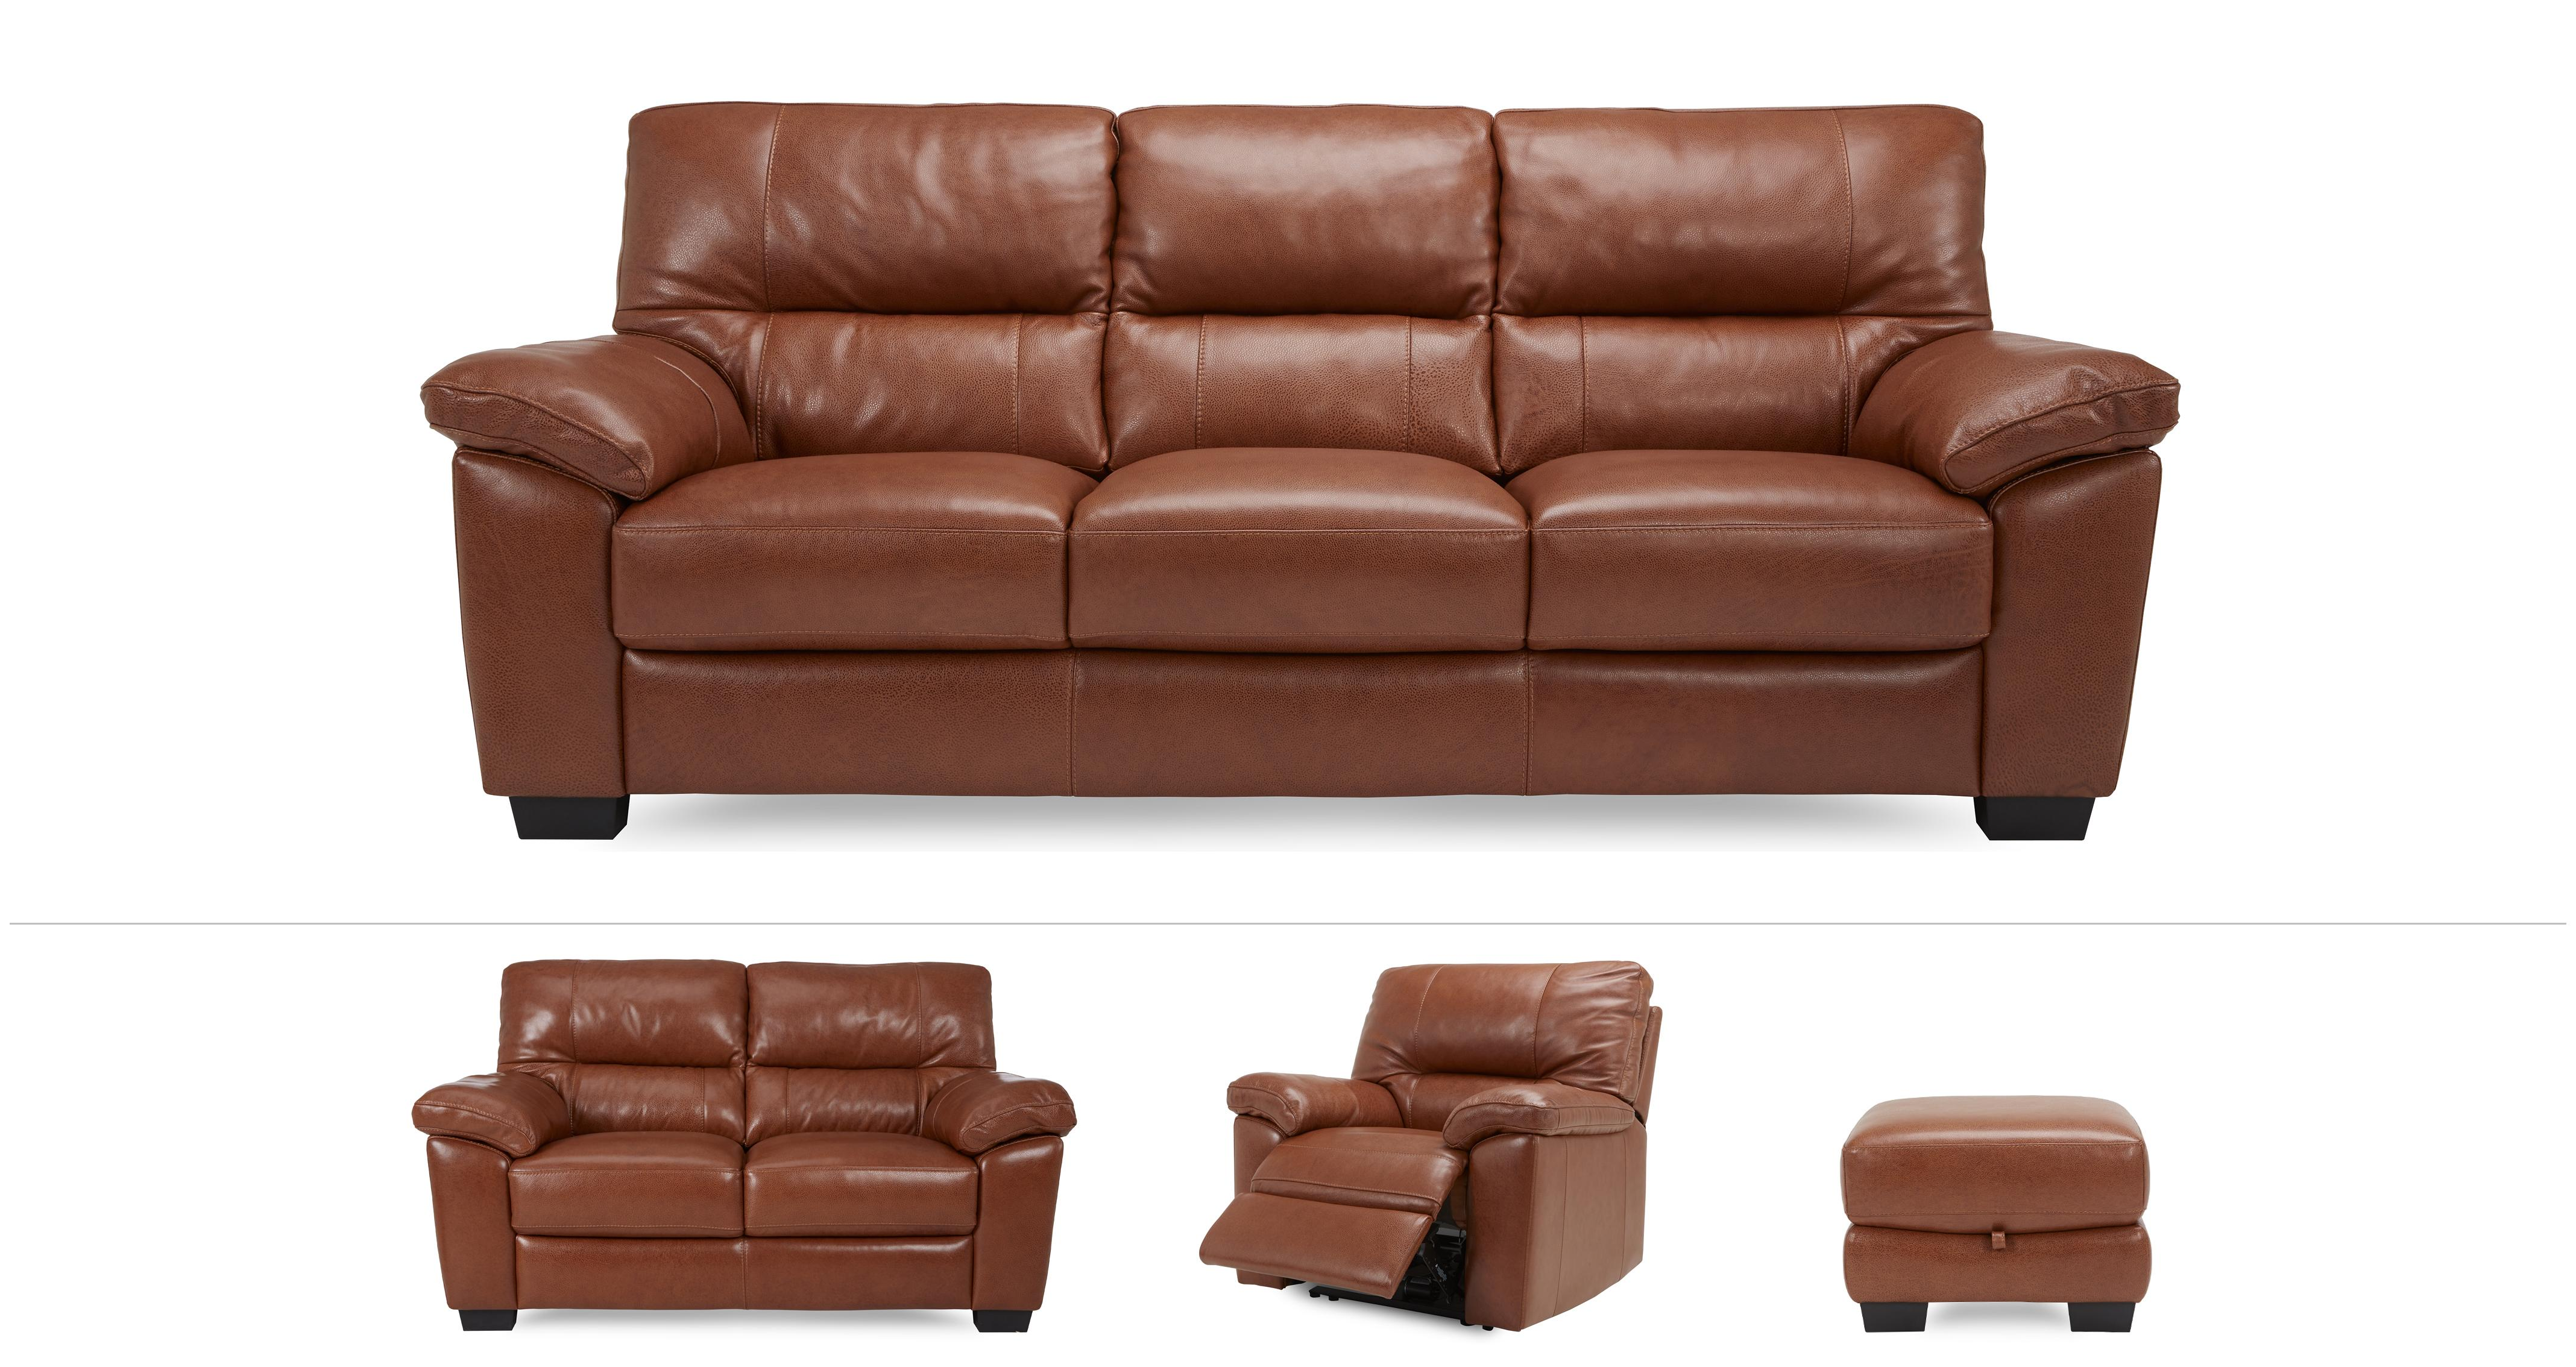 Dalmore Clearance 3 & 2 Seater Sofa, Power Chair & Stool